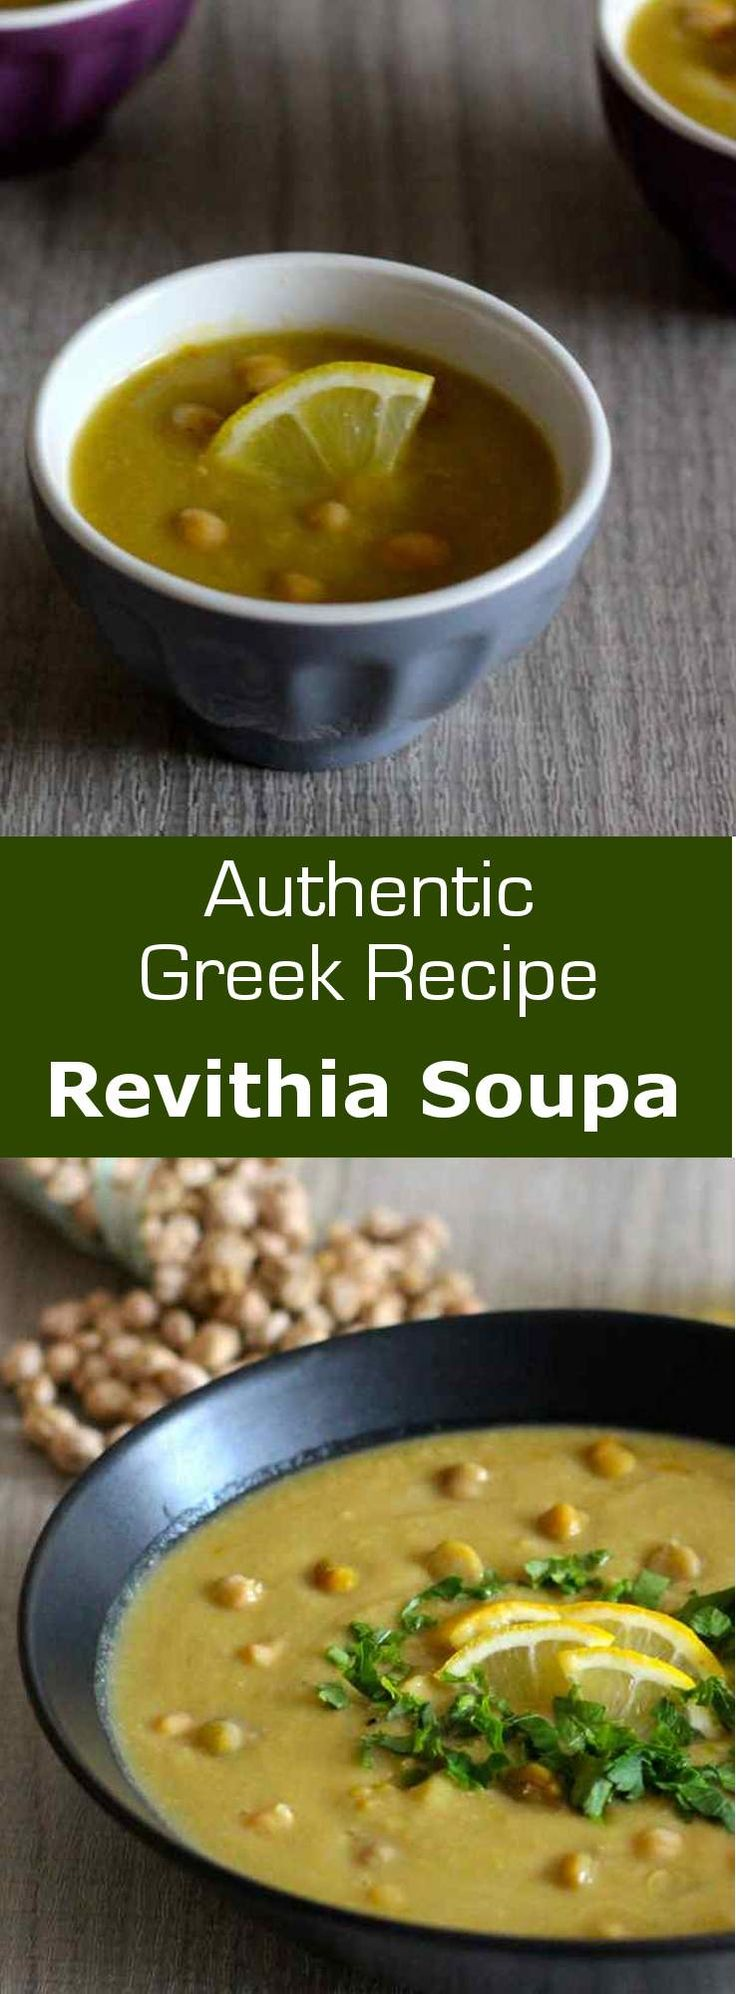 Revithia Soupa Is A Traditional Chickpea Soup Seasoned With Olive Oil And Lemon From The